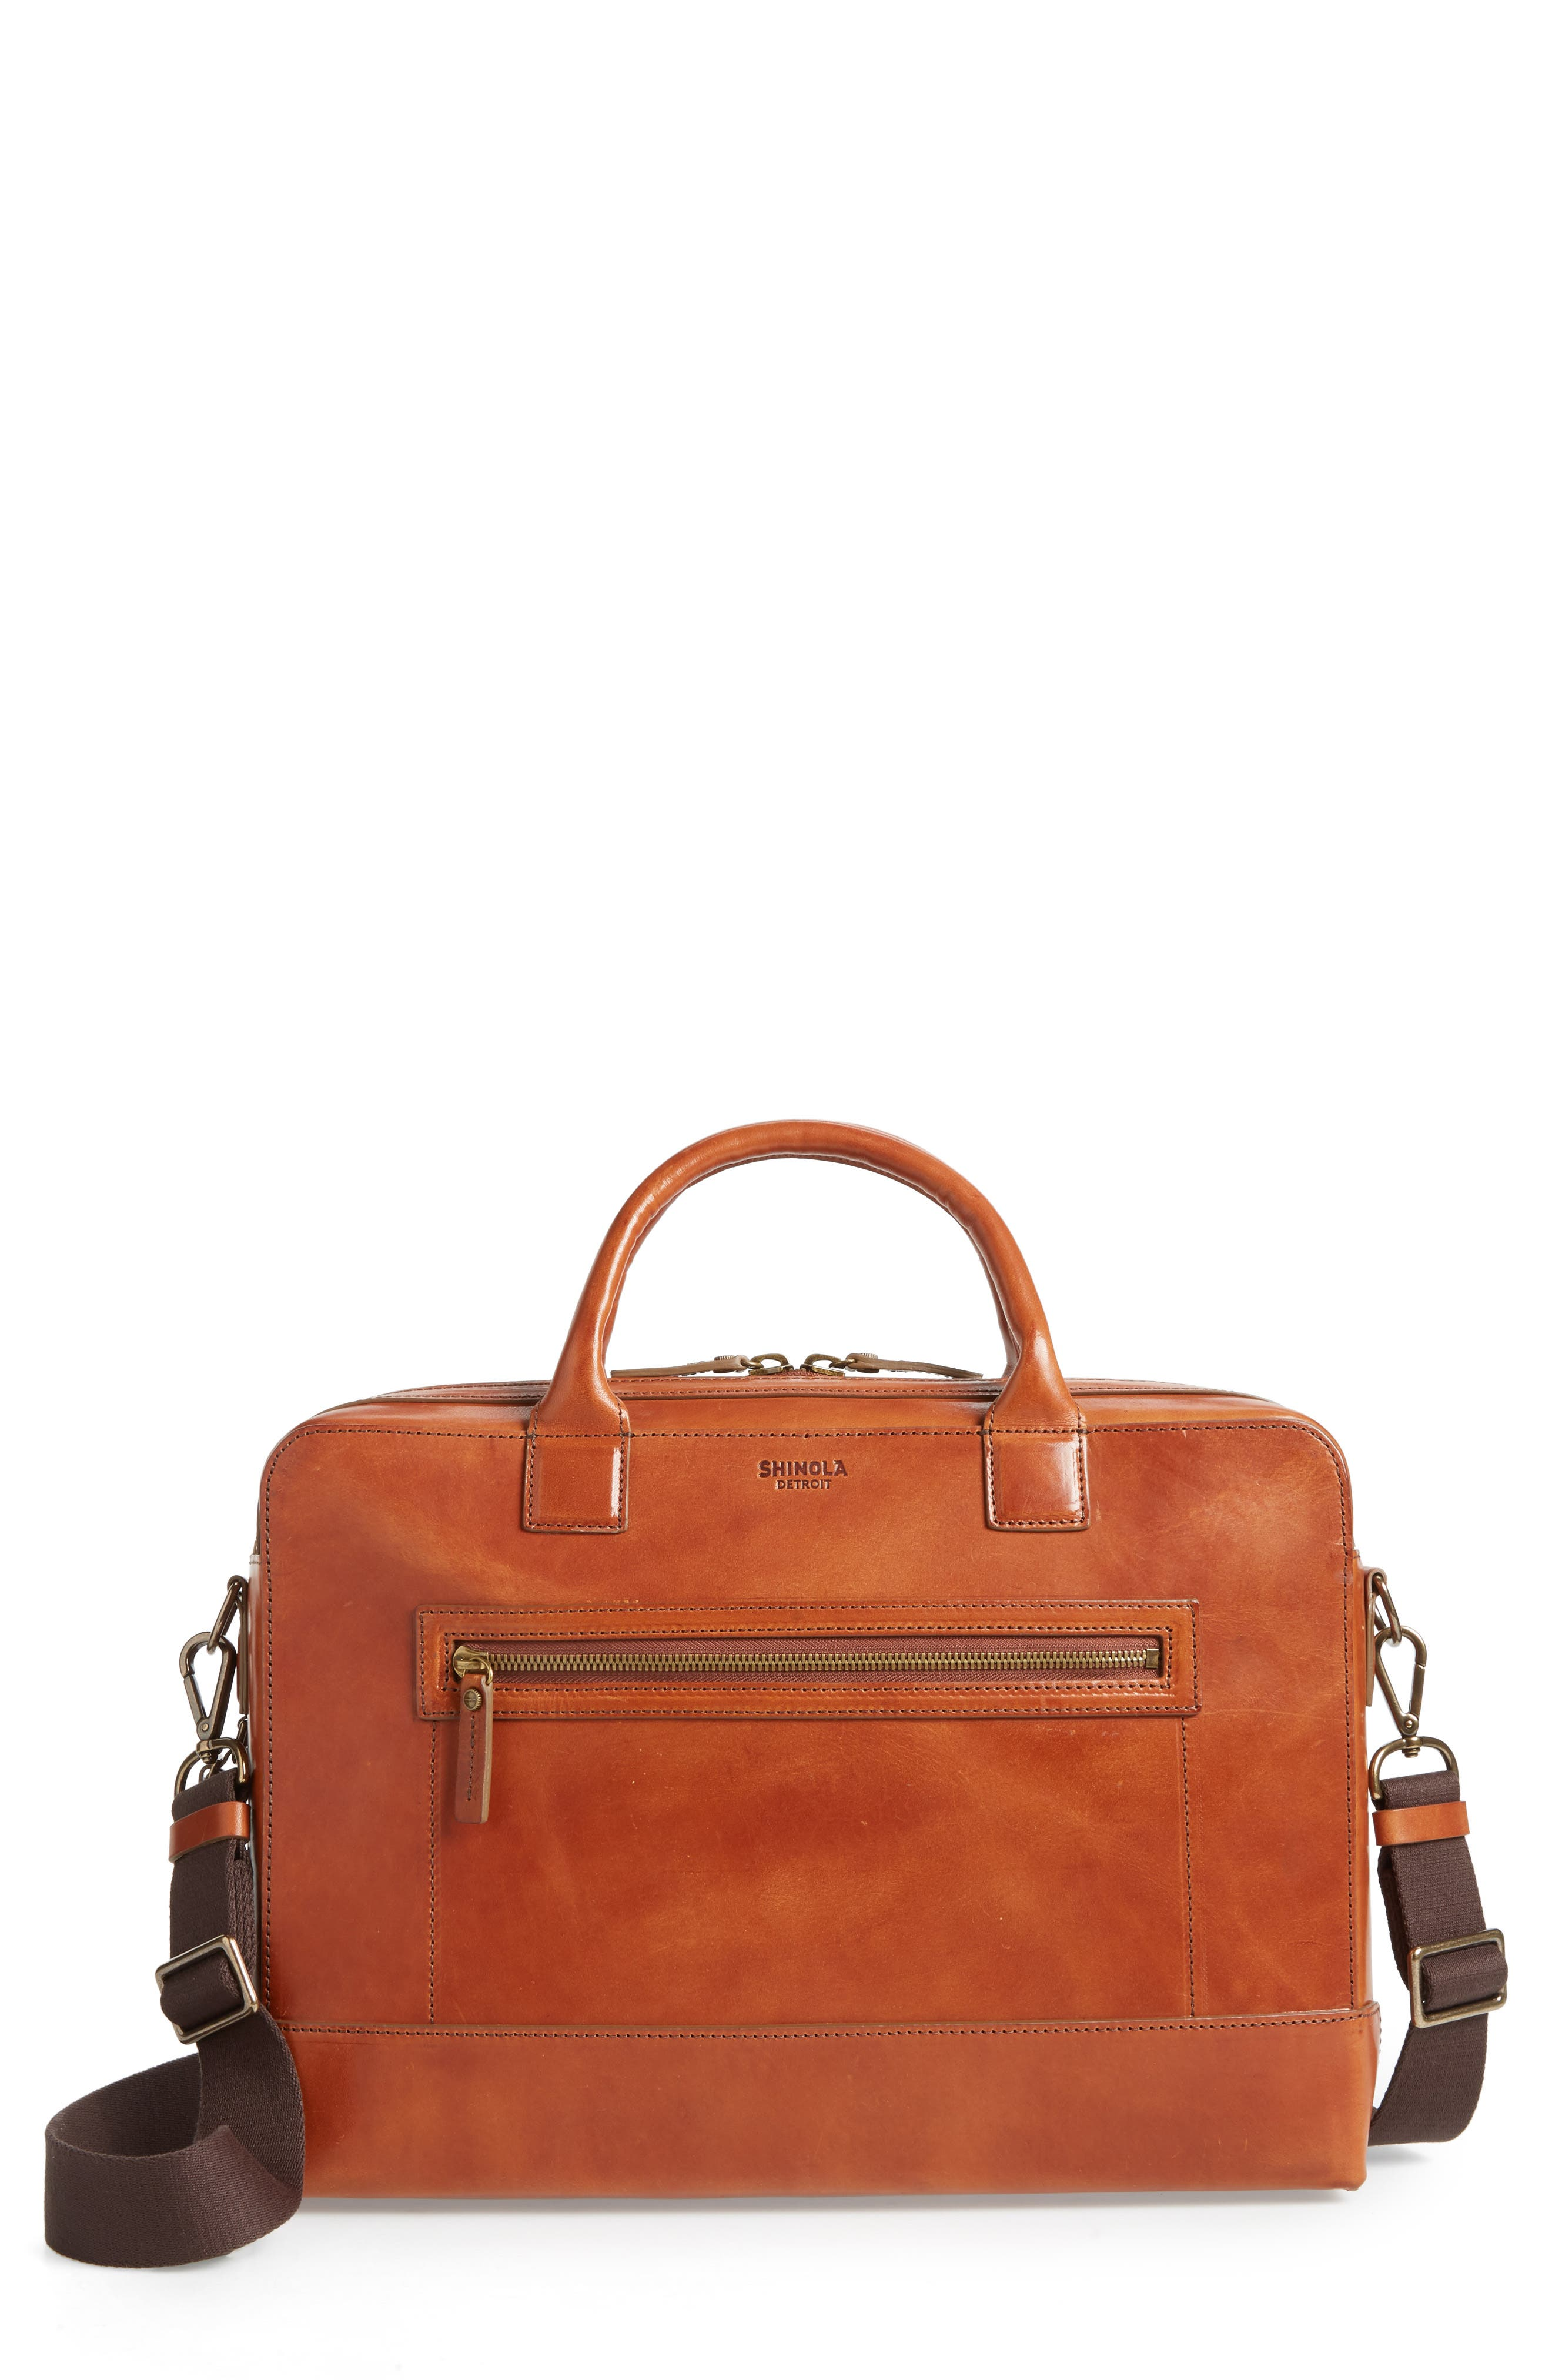 Harness Bedrock Leather Briefcase,                         Main,                         color, 220